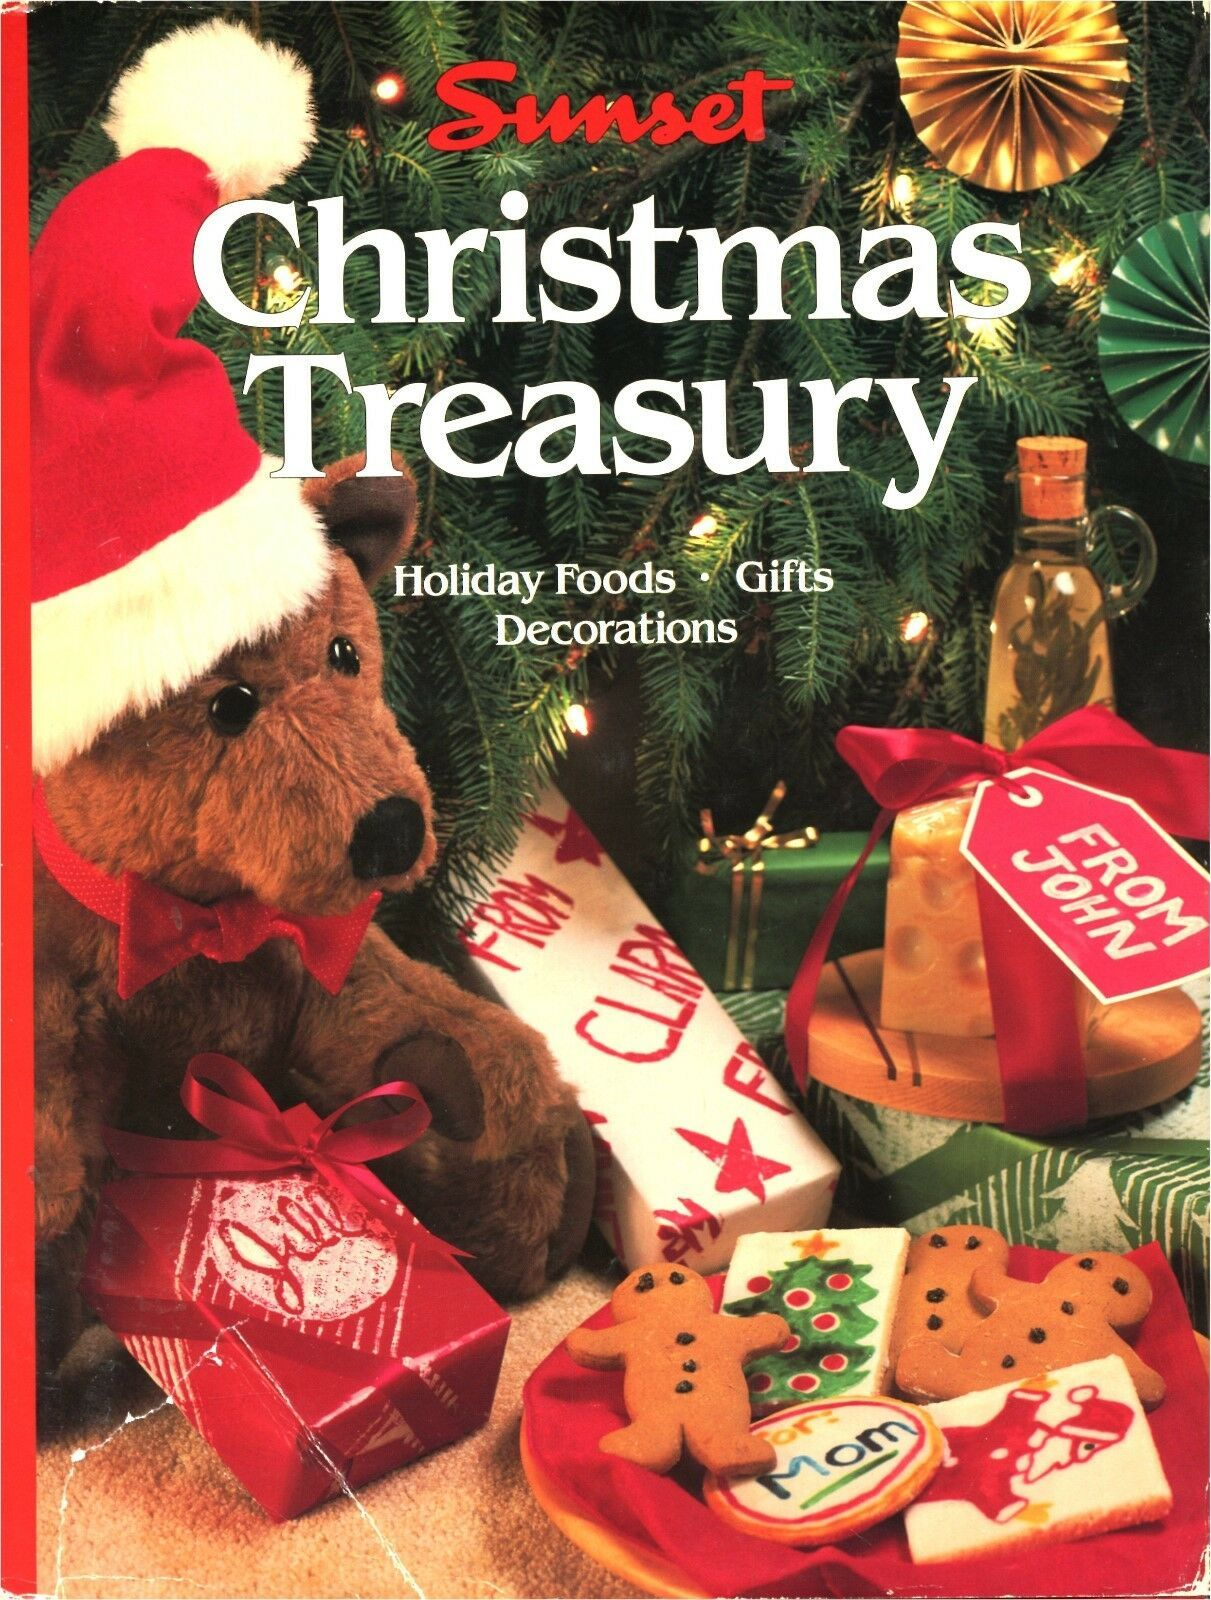 Sunset CHRISTMAS TREASURY Holiday Foods Decoration Gifts Hardcover Dustjacket